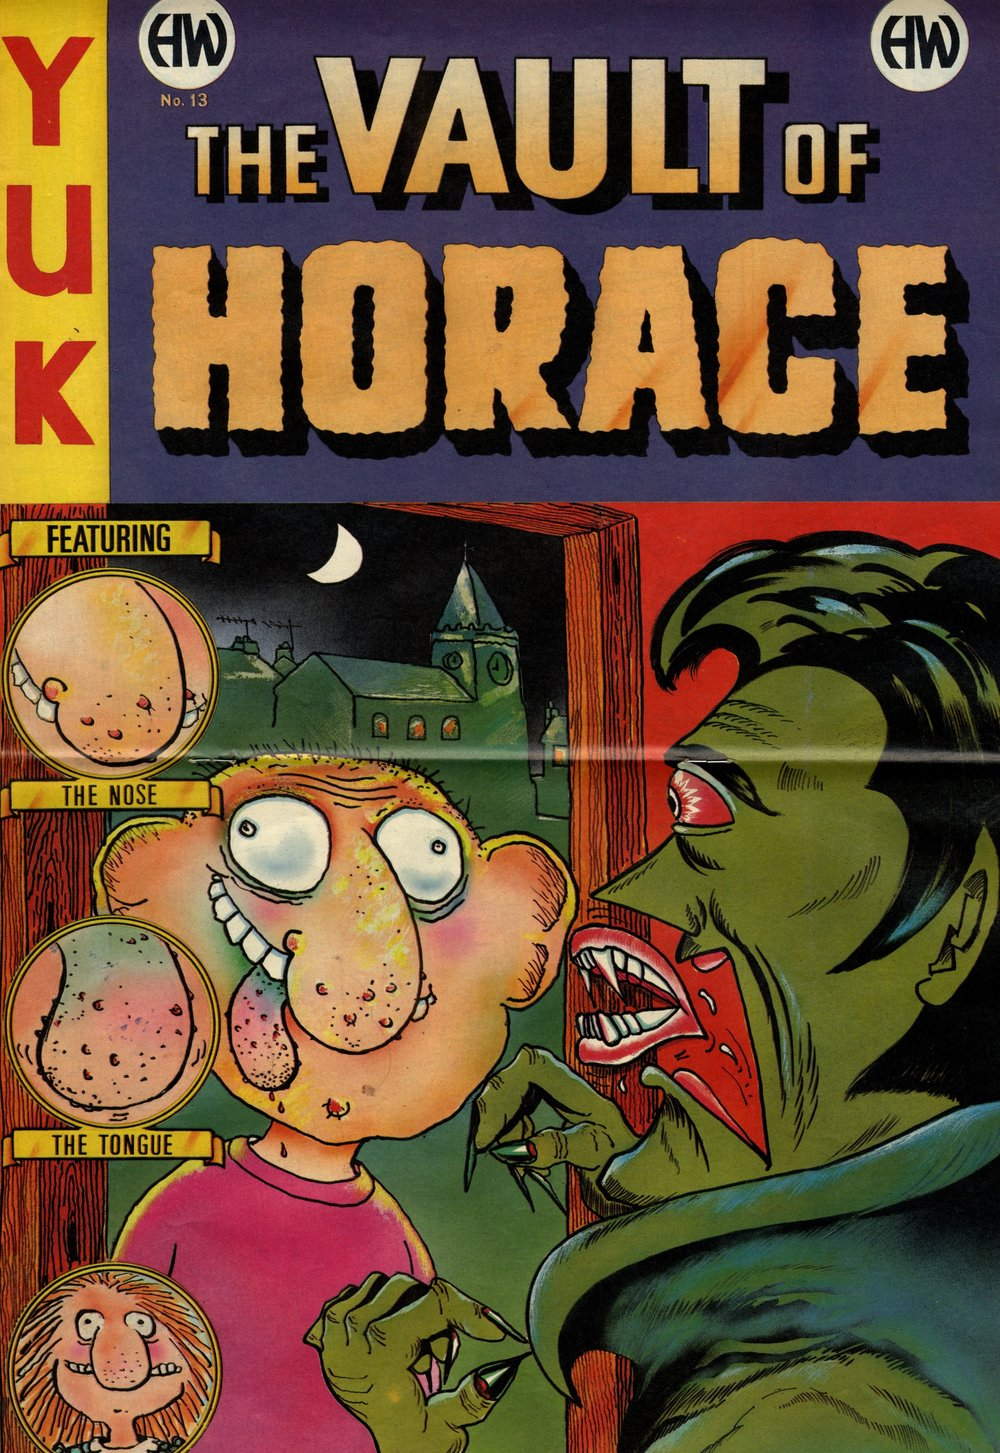 The Vault of Horace poster: Tony Husband (artist)